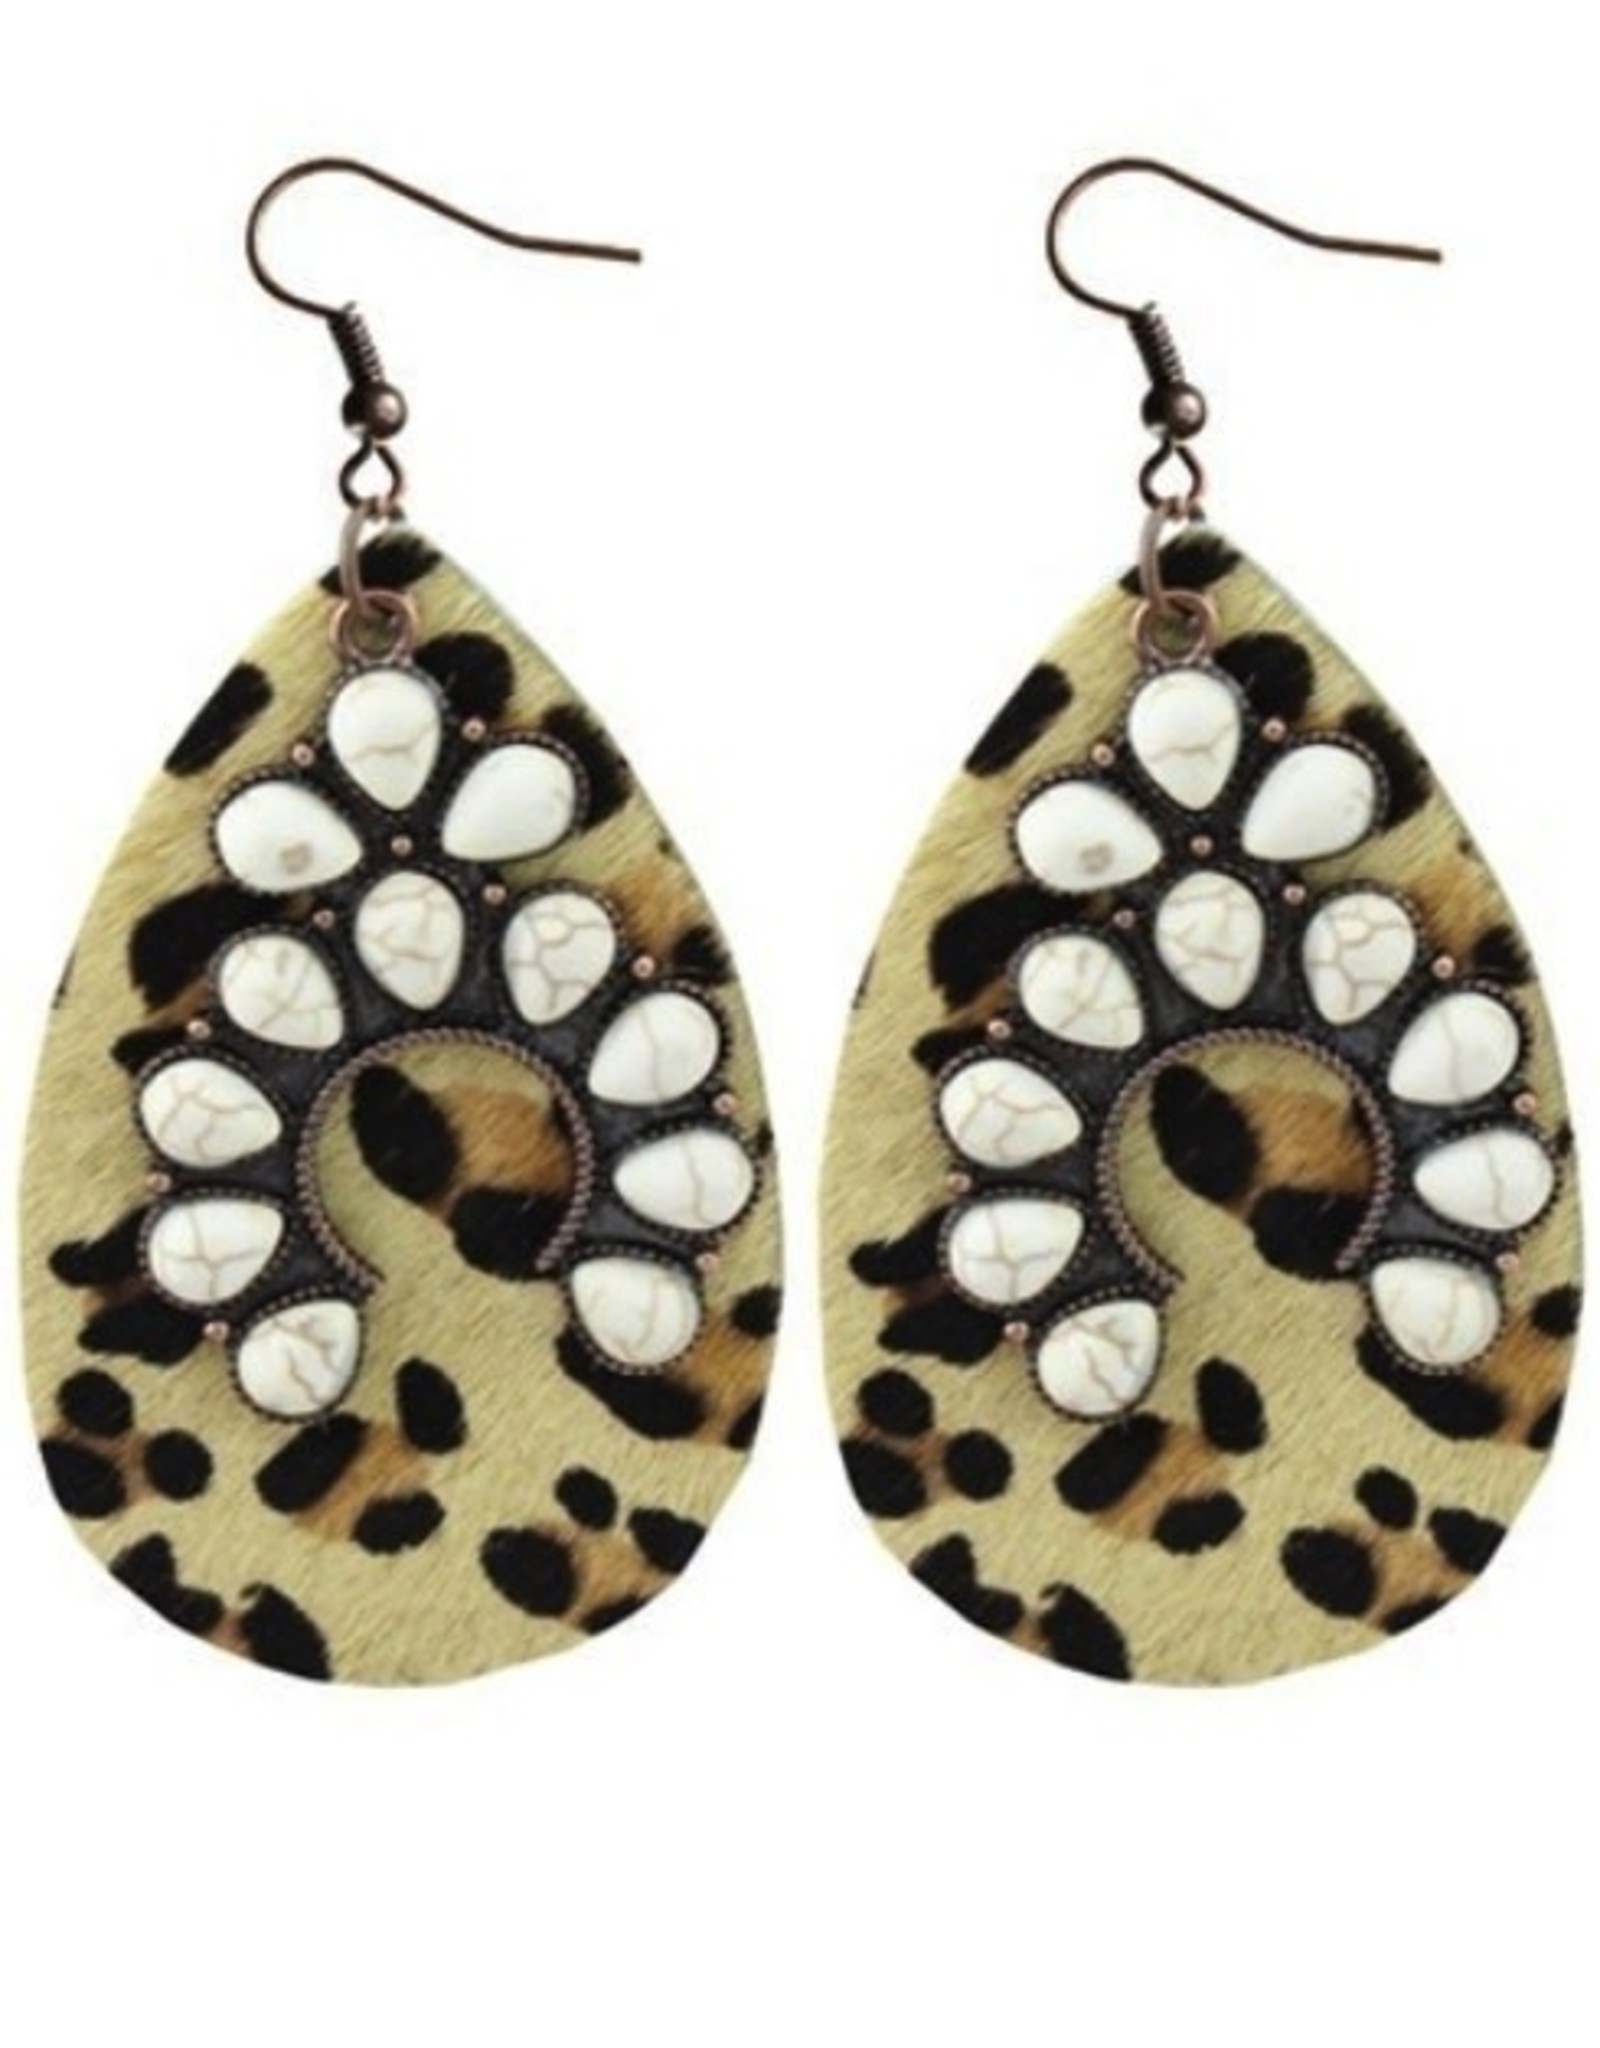 EARRINGS IVORY AND LEO LEOPARD 2.5 INCH